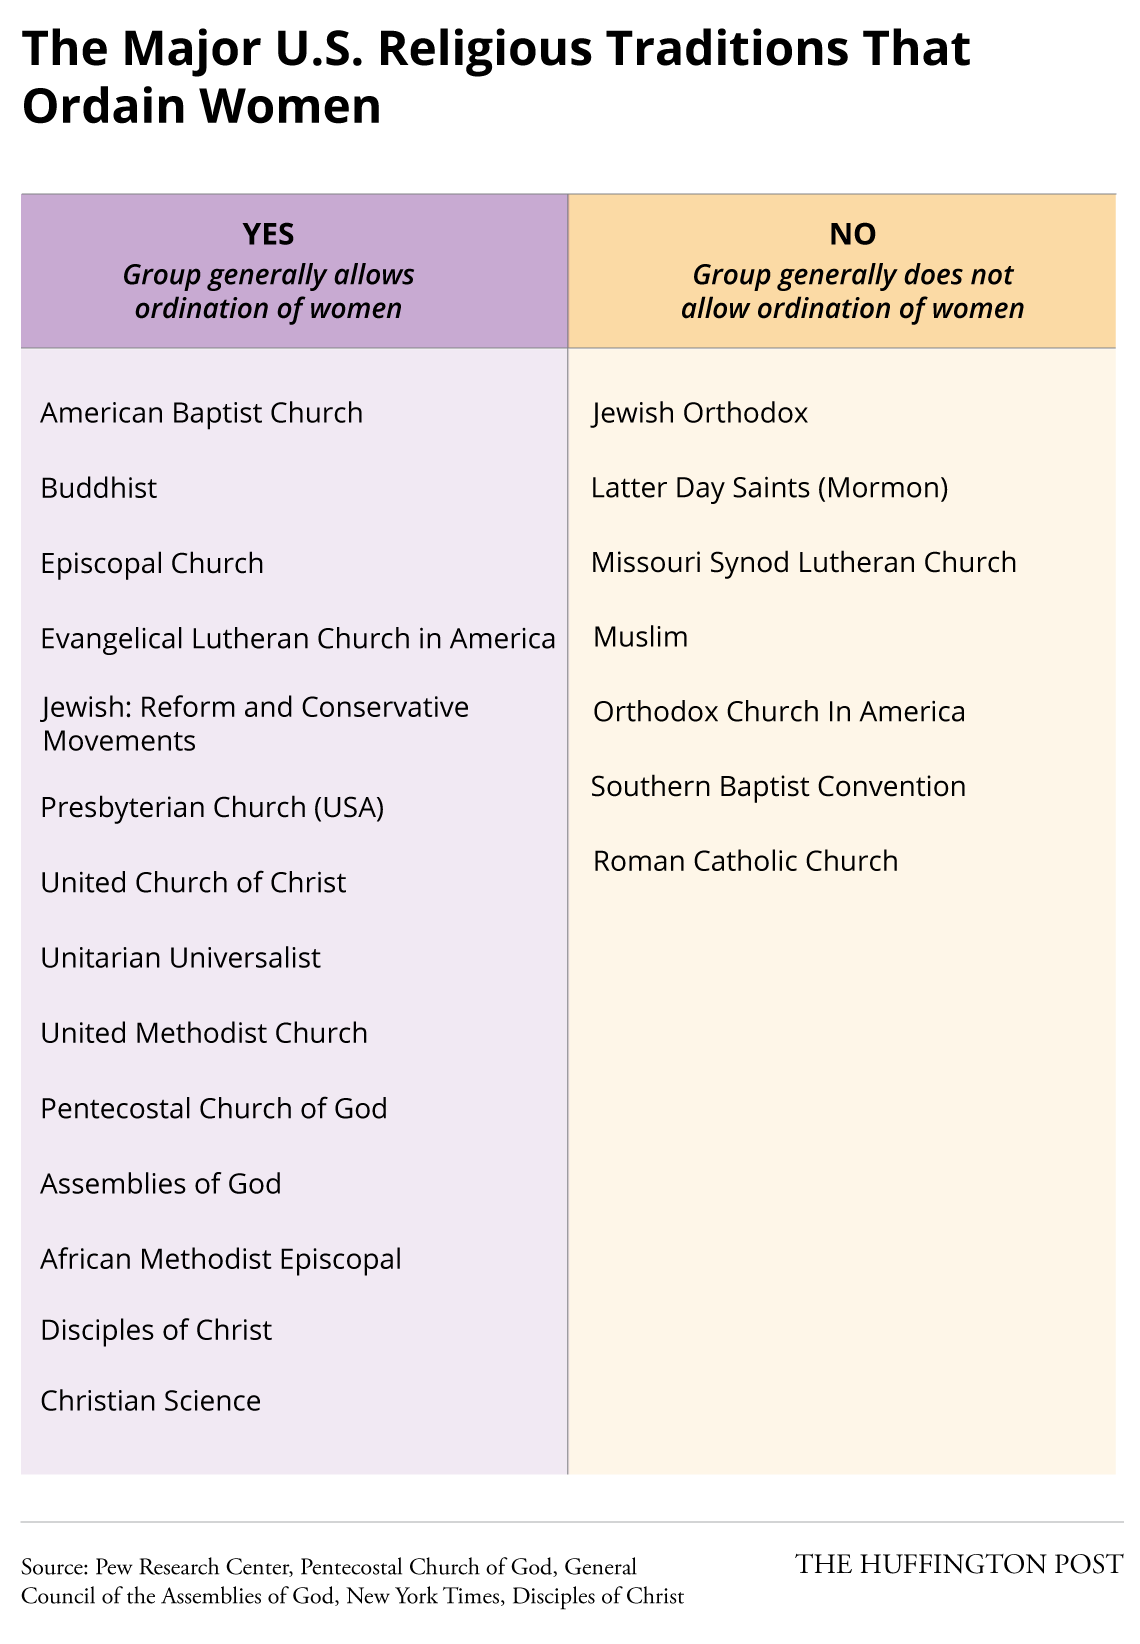 These Are The Religious Denominations That Ordain Women